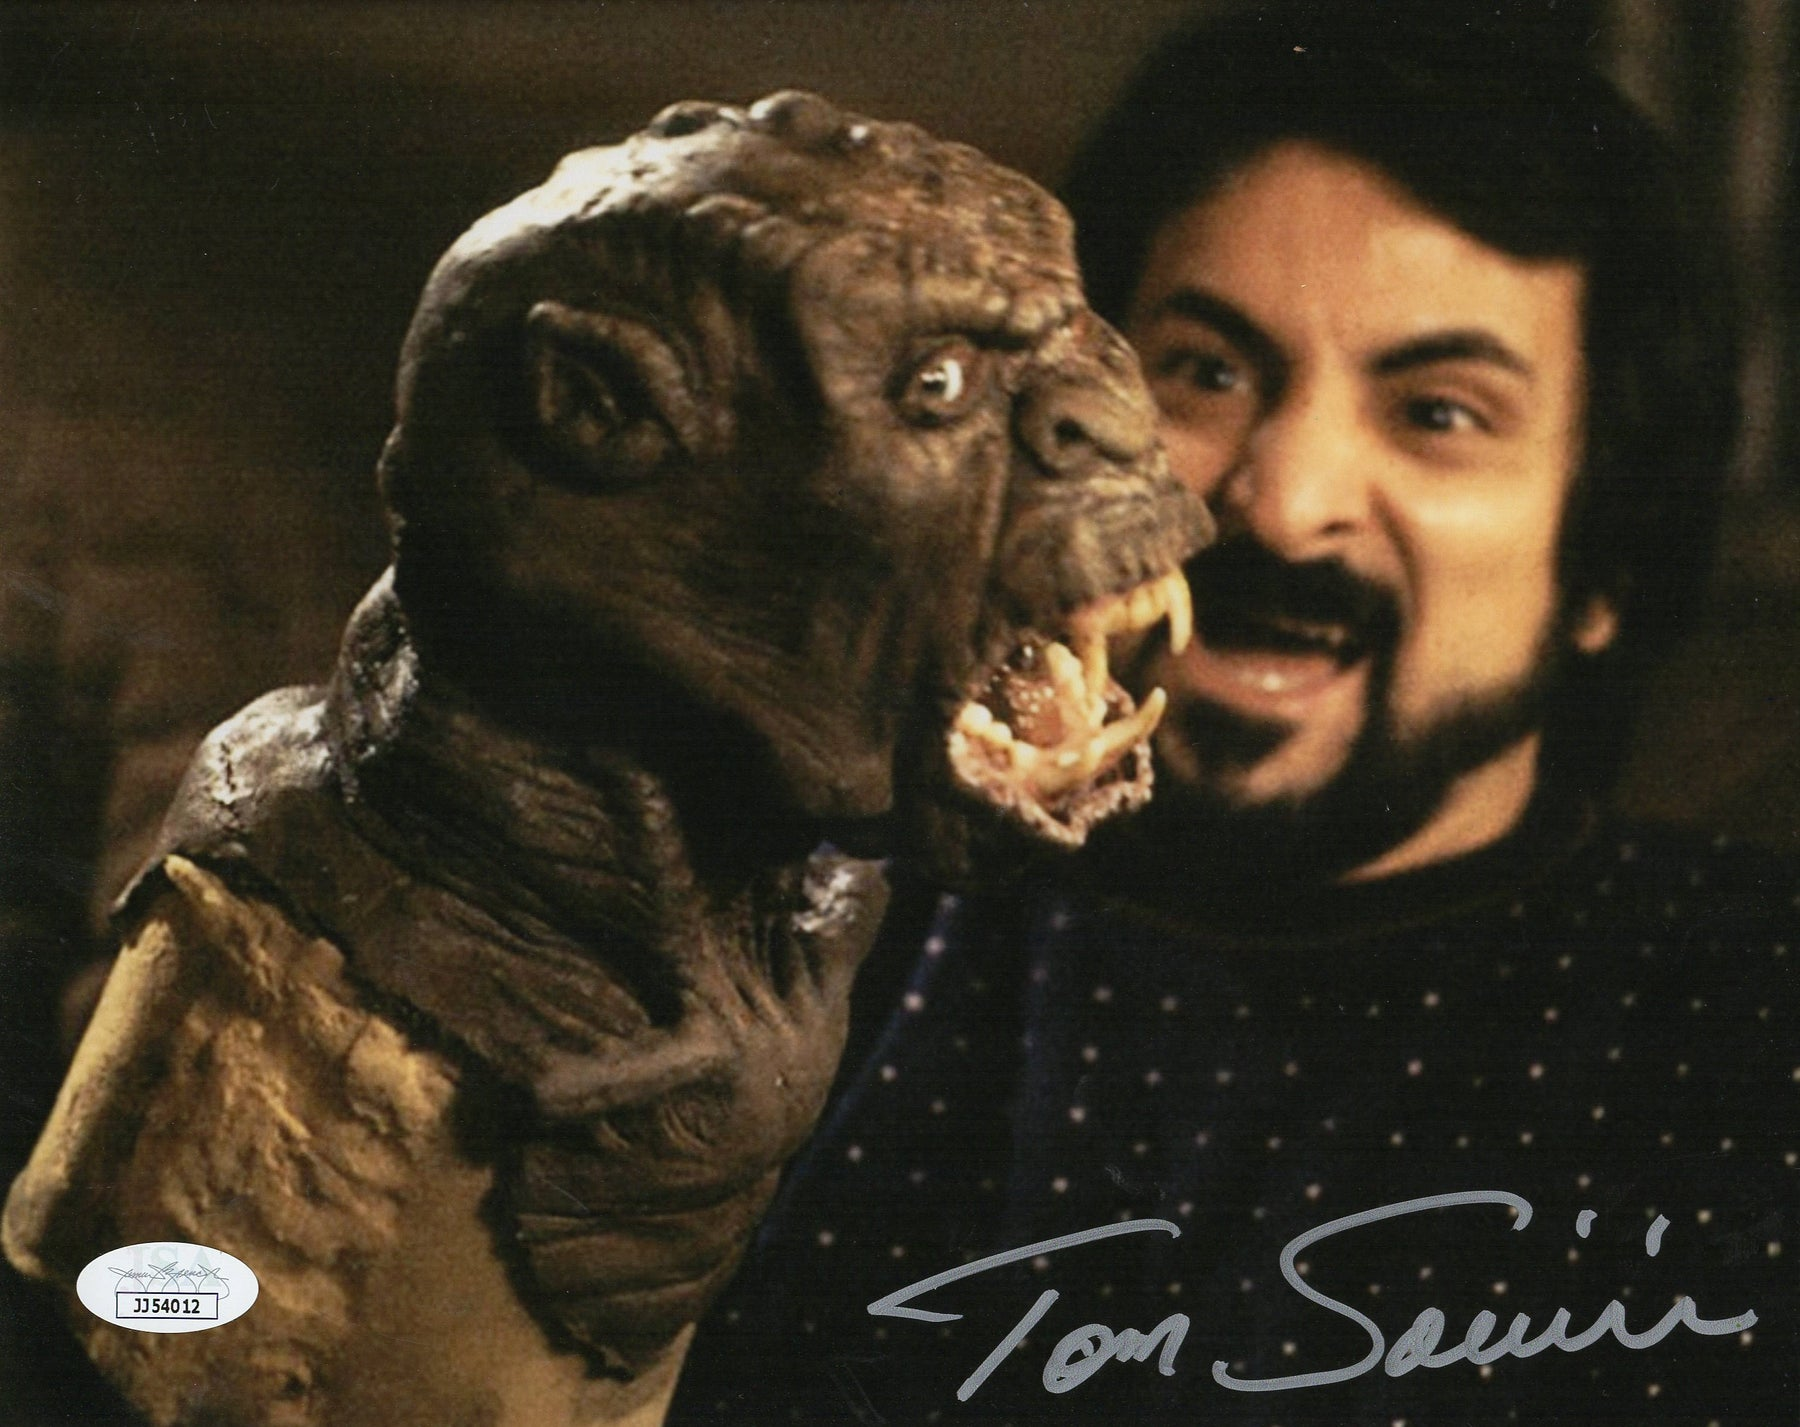 Tom Savini Autograph 8x10 Photo Friday the 13th The Last Chapter Signed JSA COA 2